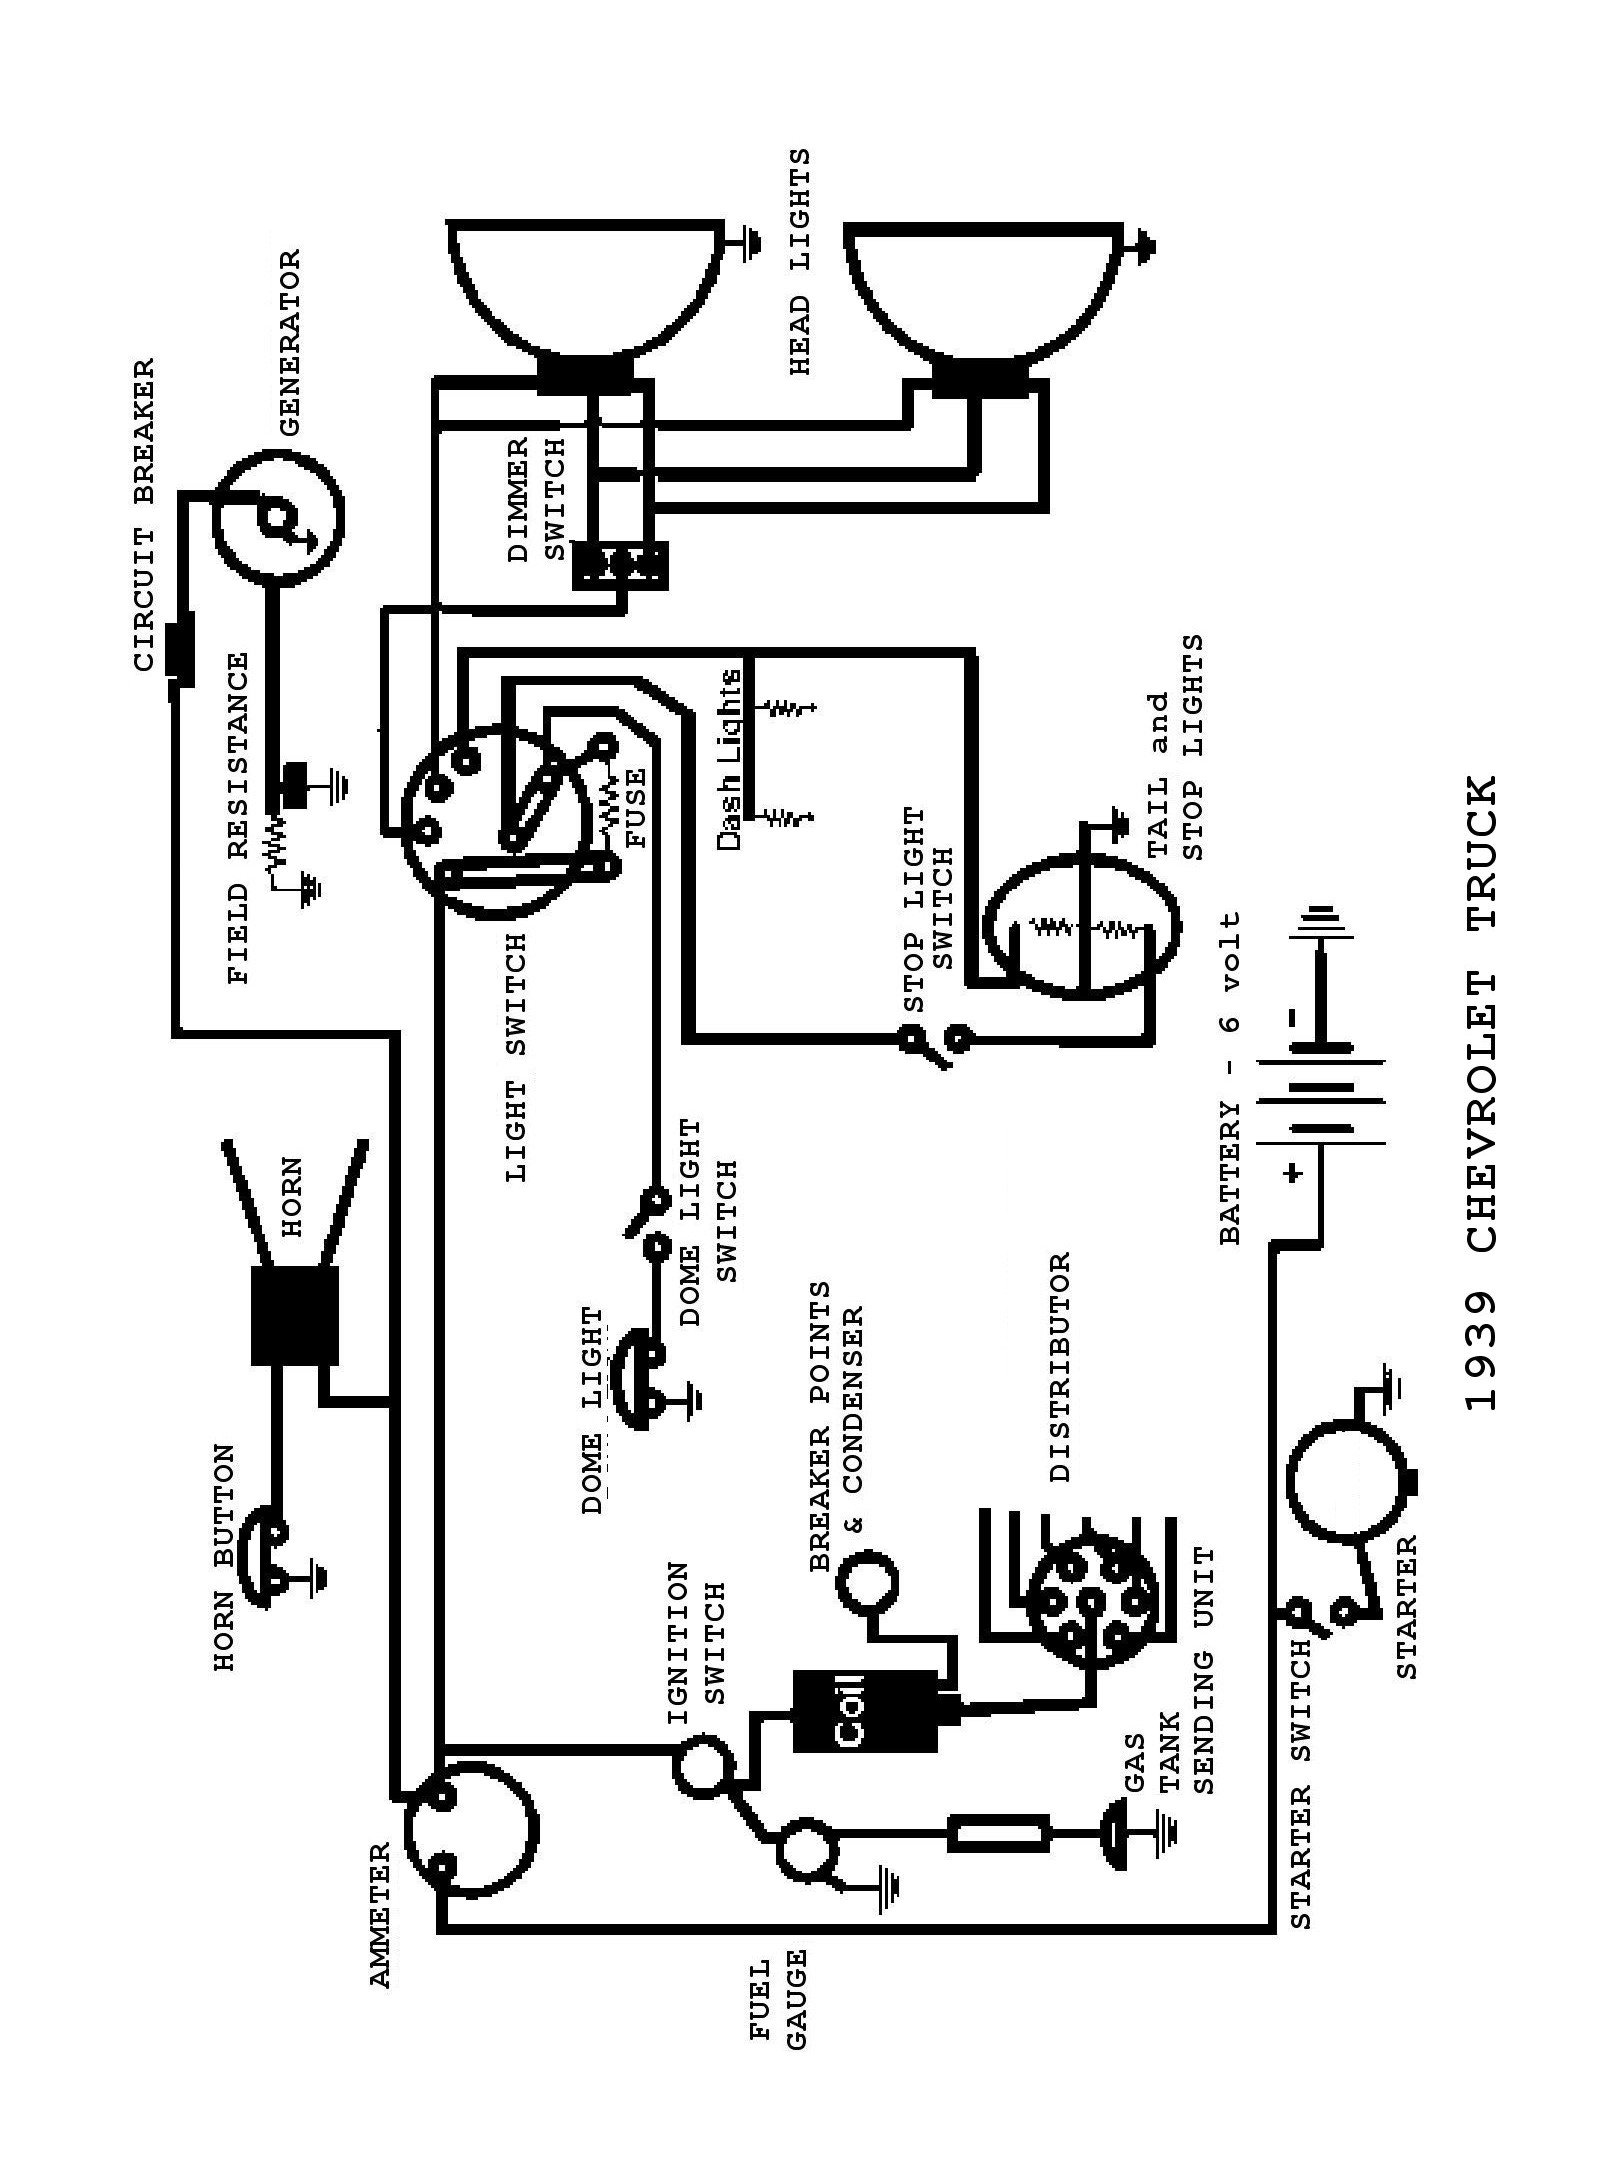 hight resolution of chevy wiring diagrams chevrolet sonic wiring diagram chevrolet volt wiring diagram